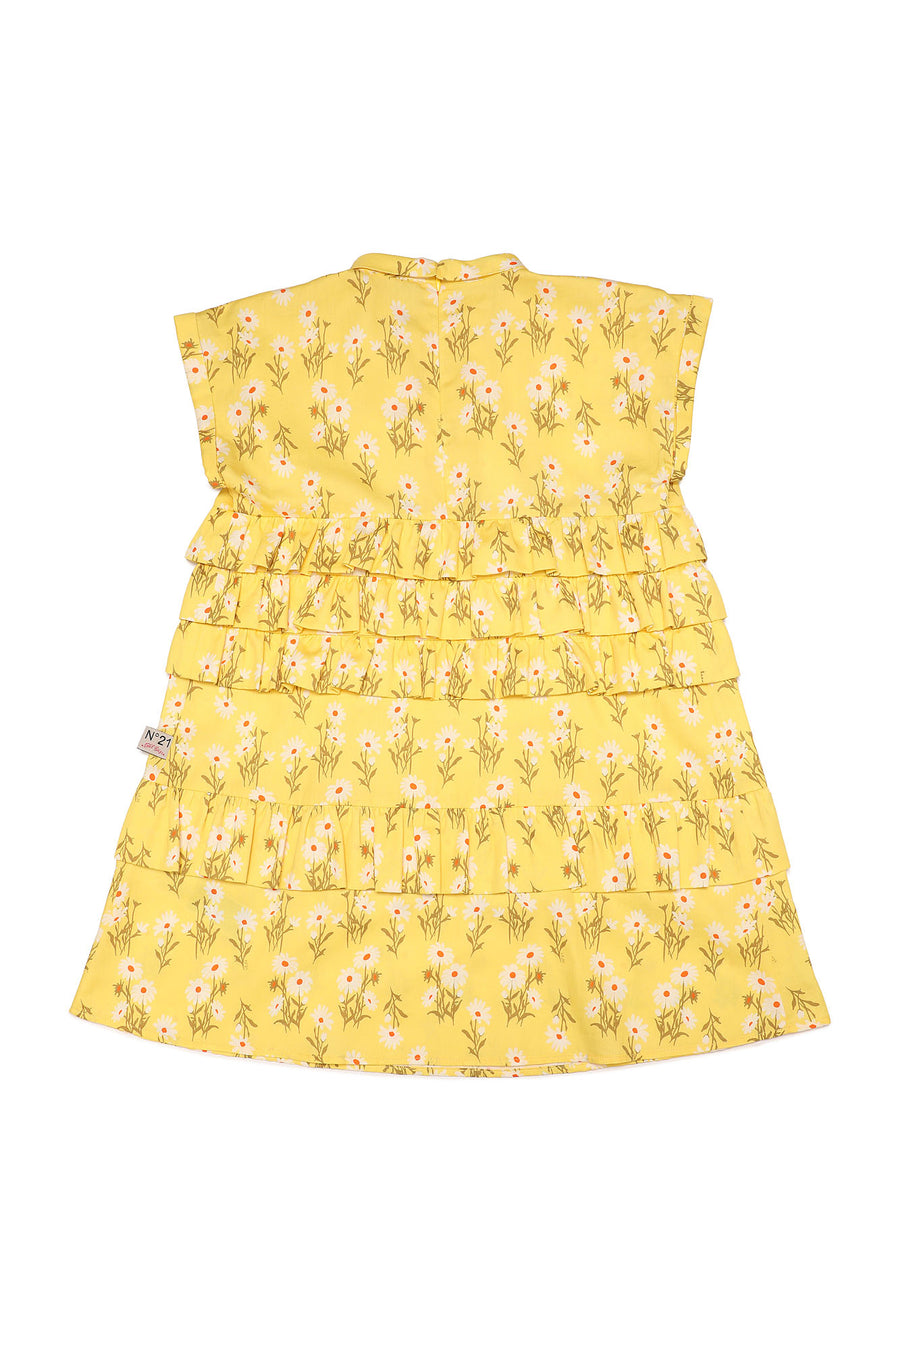 Yellow Floral Dress by N21